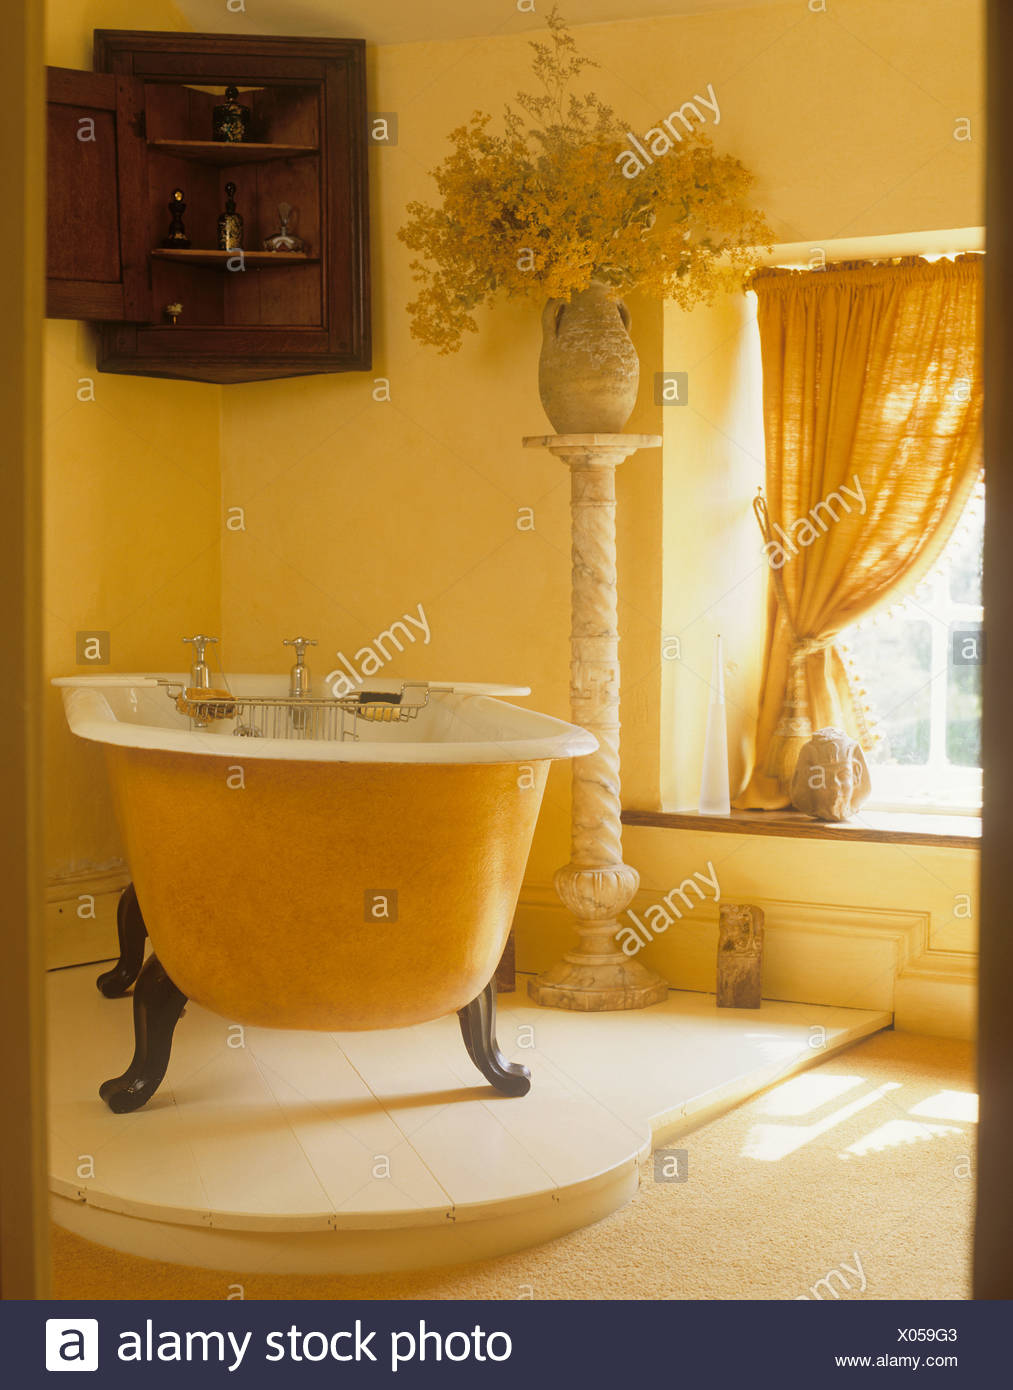 Claw Foot Bath On Raised Floor In Yellow Bathroom With Antique Corner  Cupboard With Vase Of Flowers On Tall Pedestal